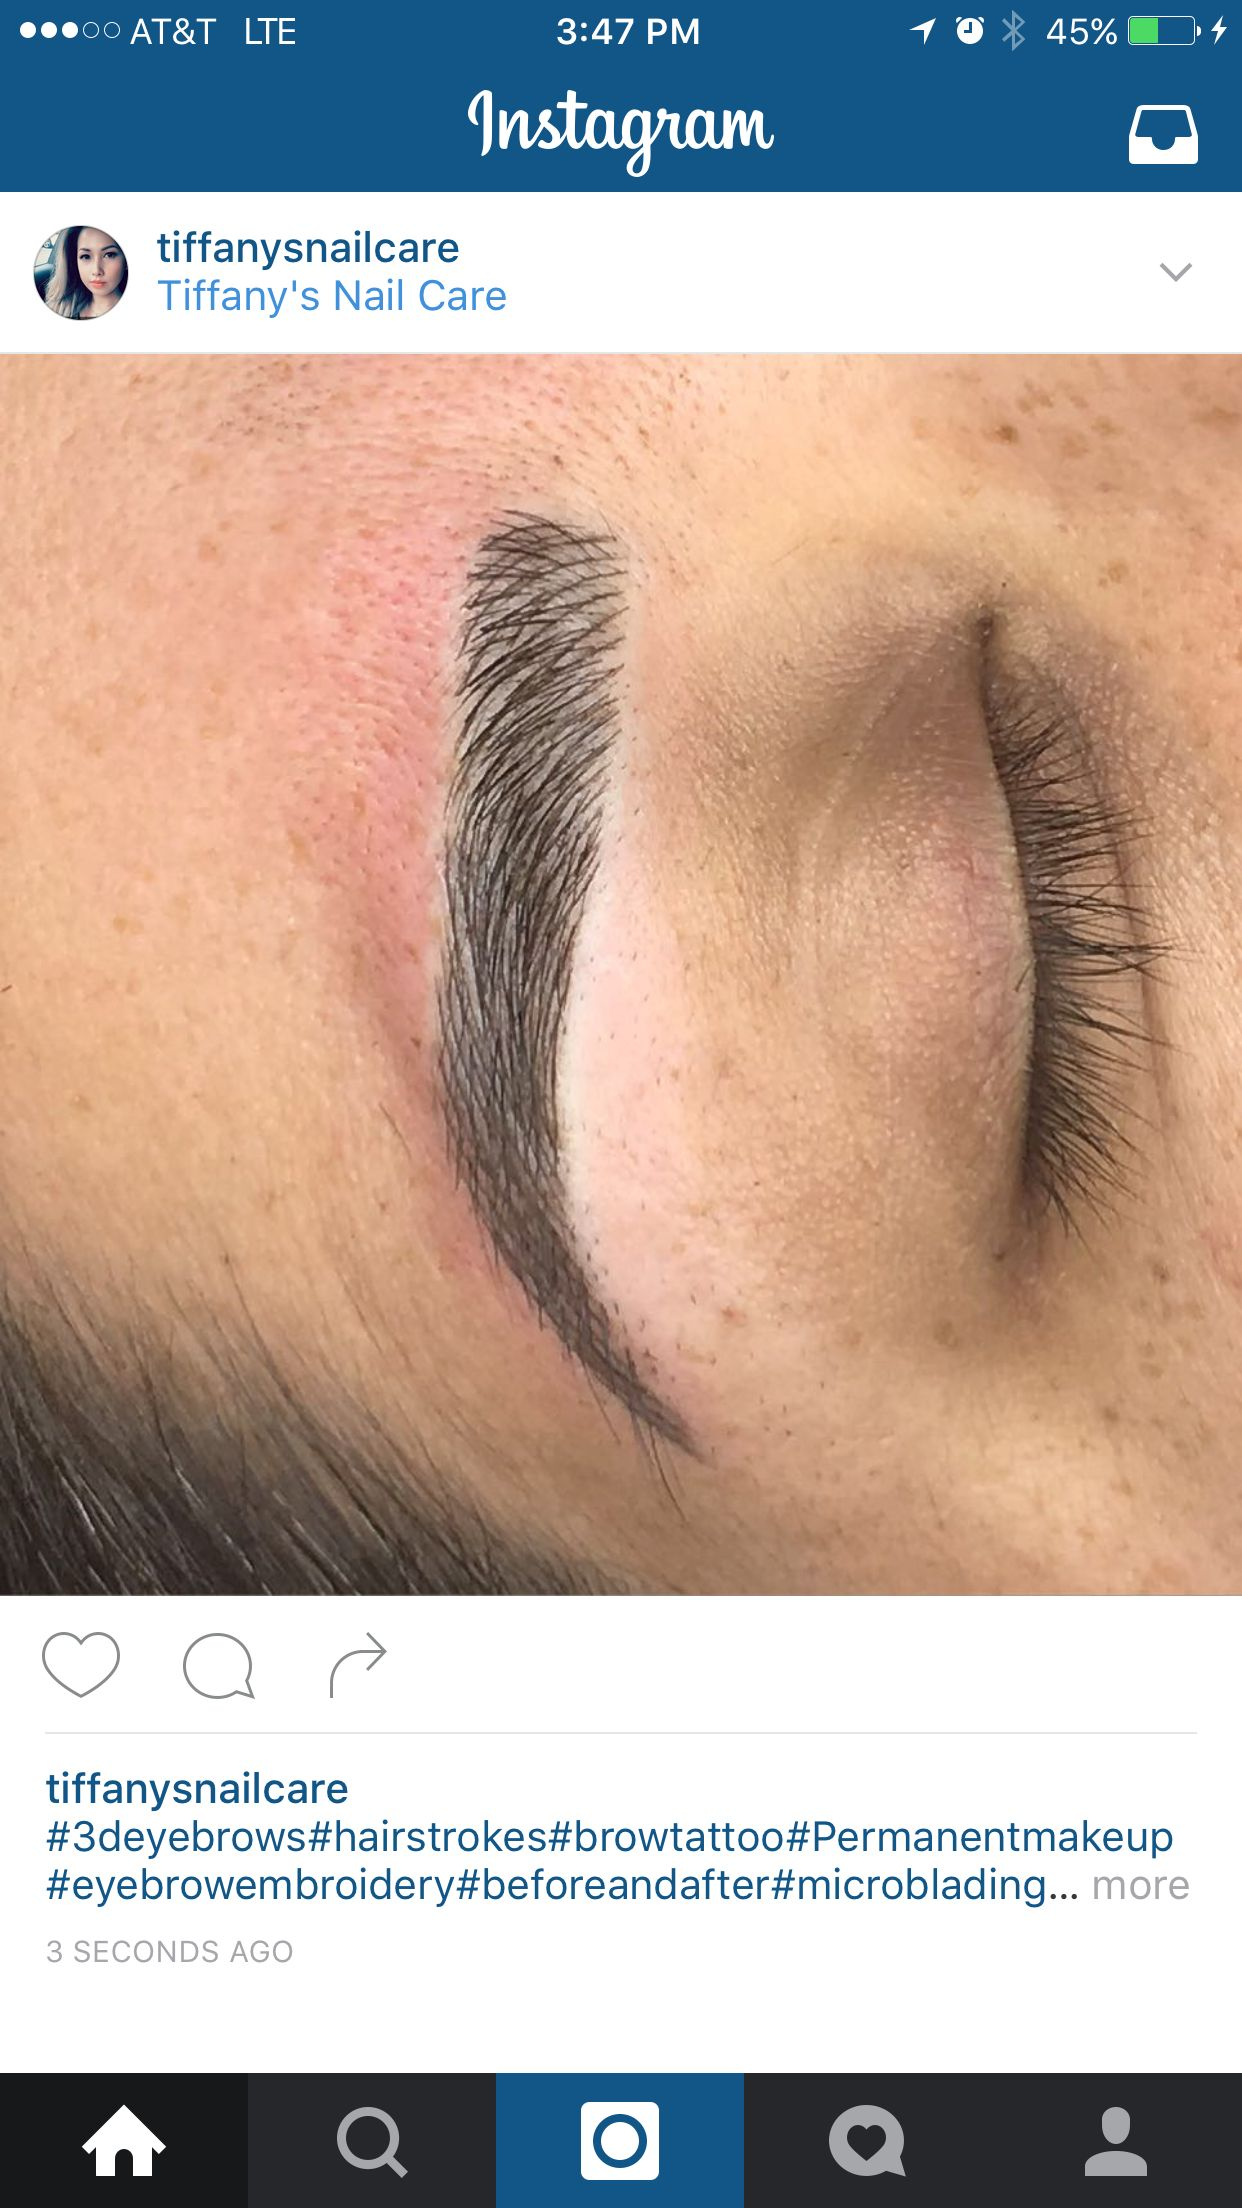 3d Hair Stroke Permanent Makeup Eyebrows : stroke, permanent, makeup, eyebrows, Stroke, Permanent, Makeup, Tattoo., Cosmetic, Feathering., Microblading, Microblading,, Eyebrows,, Eyebrows